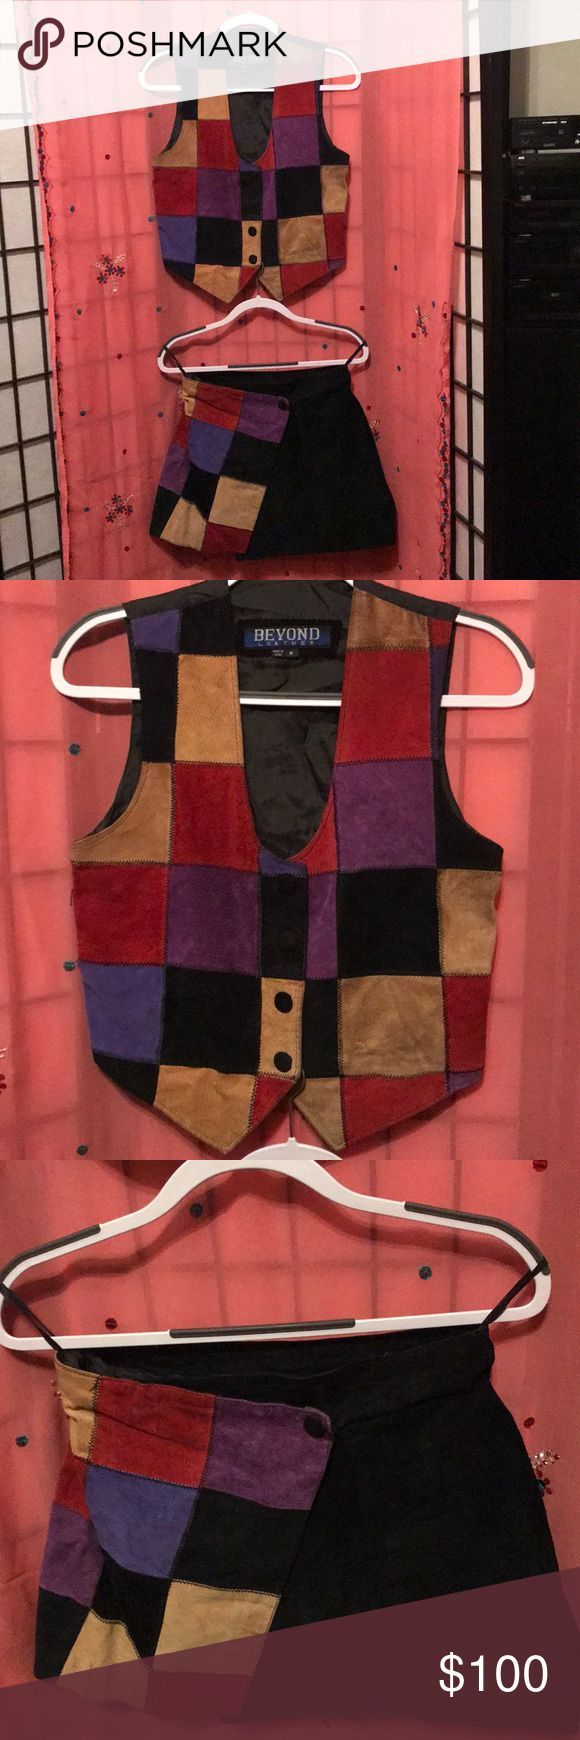 💞SALE💞Beyond genuine leather vest and skirt set Beyond black genuine leather vest and skirt with multi colors vest size medium/skirt size 9 (sold as a set) Beyond Other